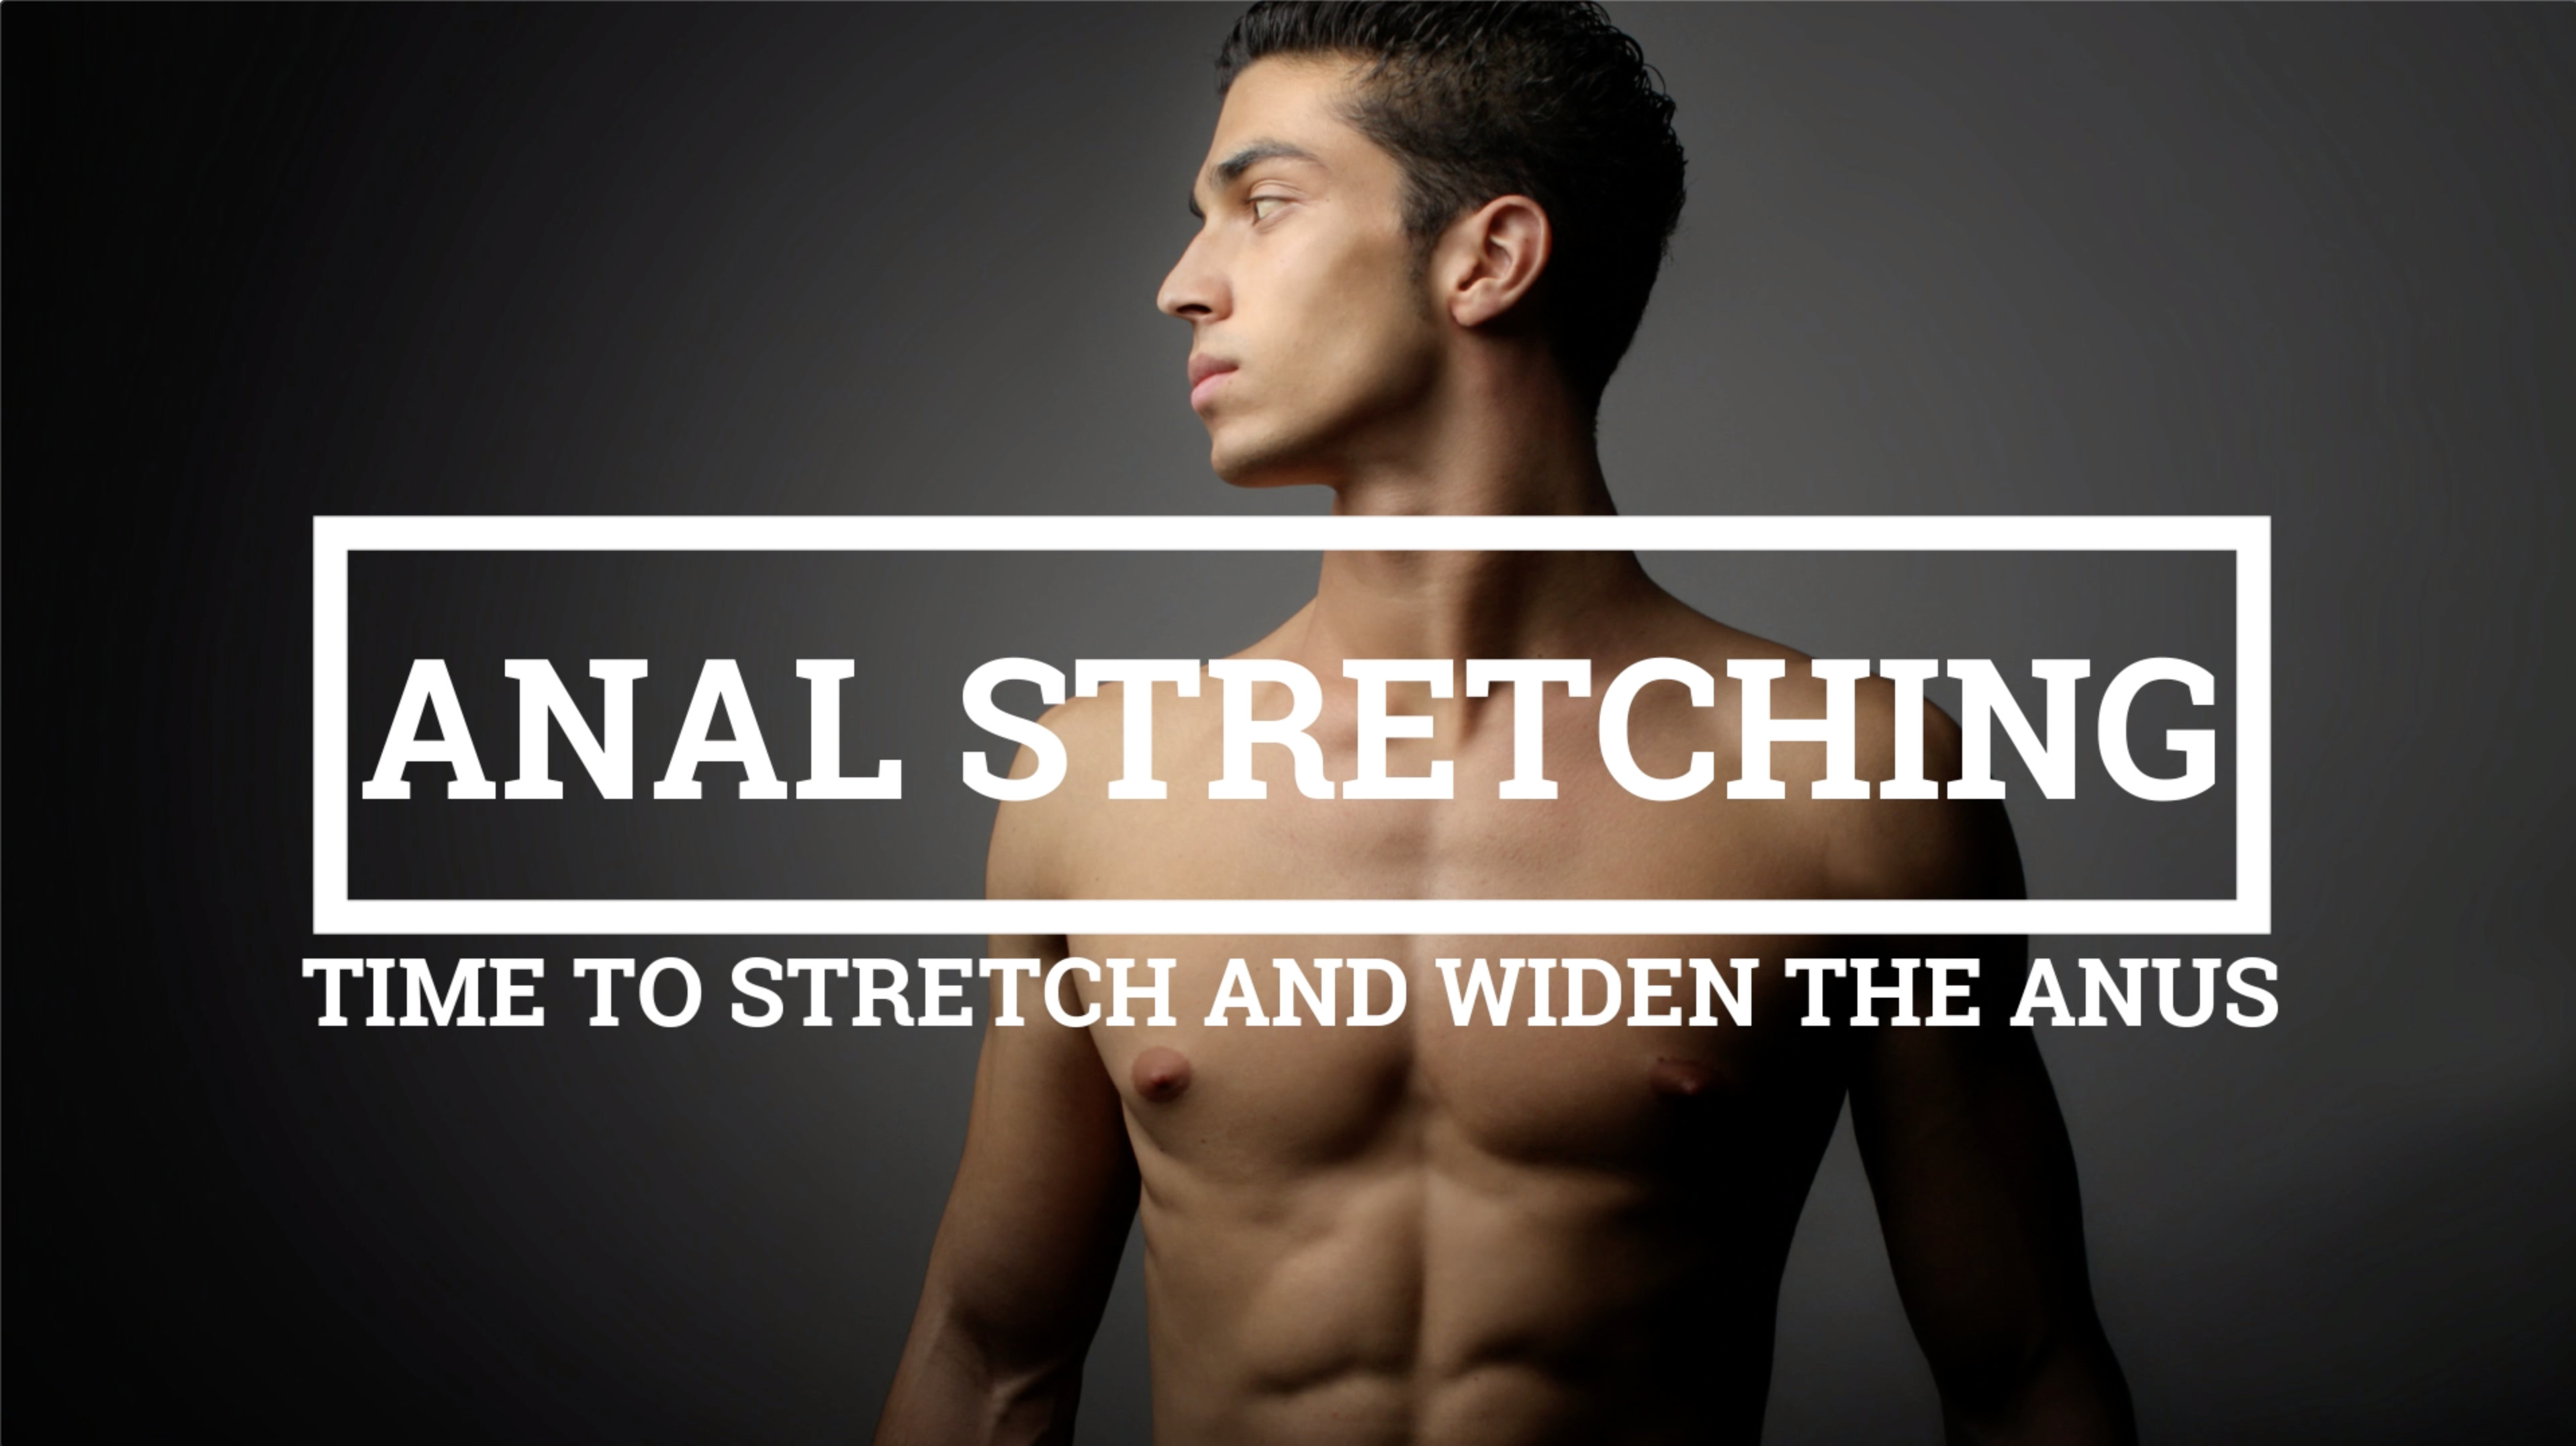 Do you to want enjoy more Fisting? Most Powerful Course For Anal Stretching